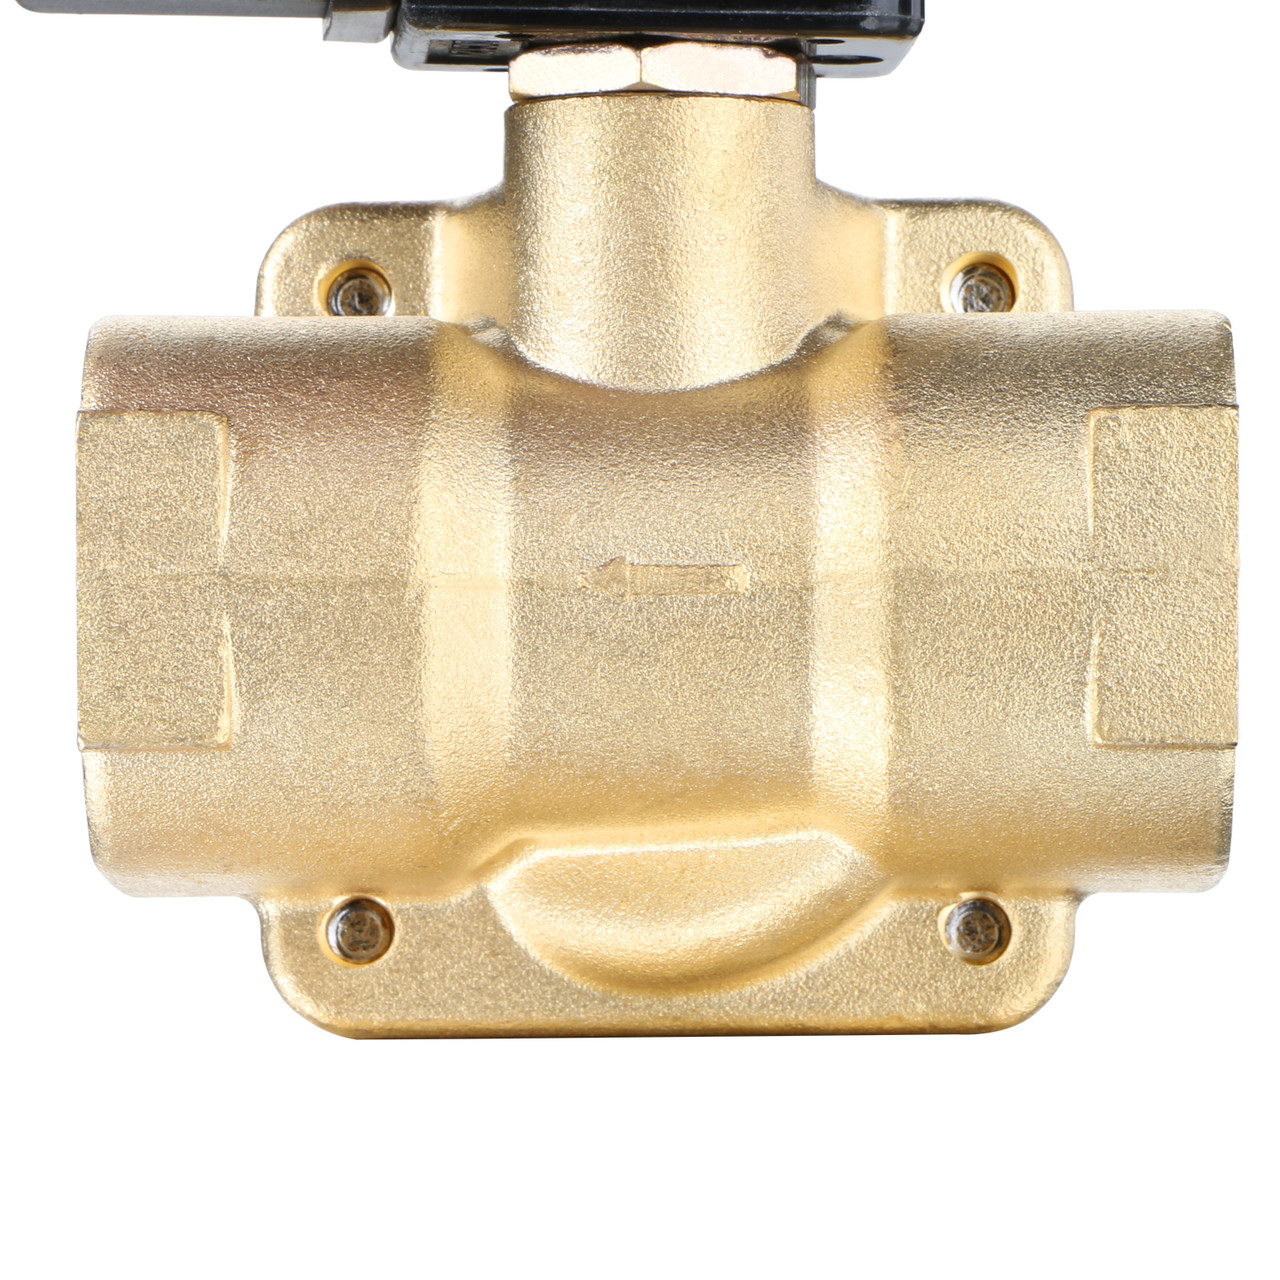 "U.S. Solid Electric Solenoid Valve- 1"" 12V DC 230PSI Solenoid Valve Brass Body Normally Closed, VITON SEAL"